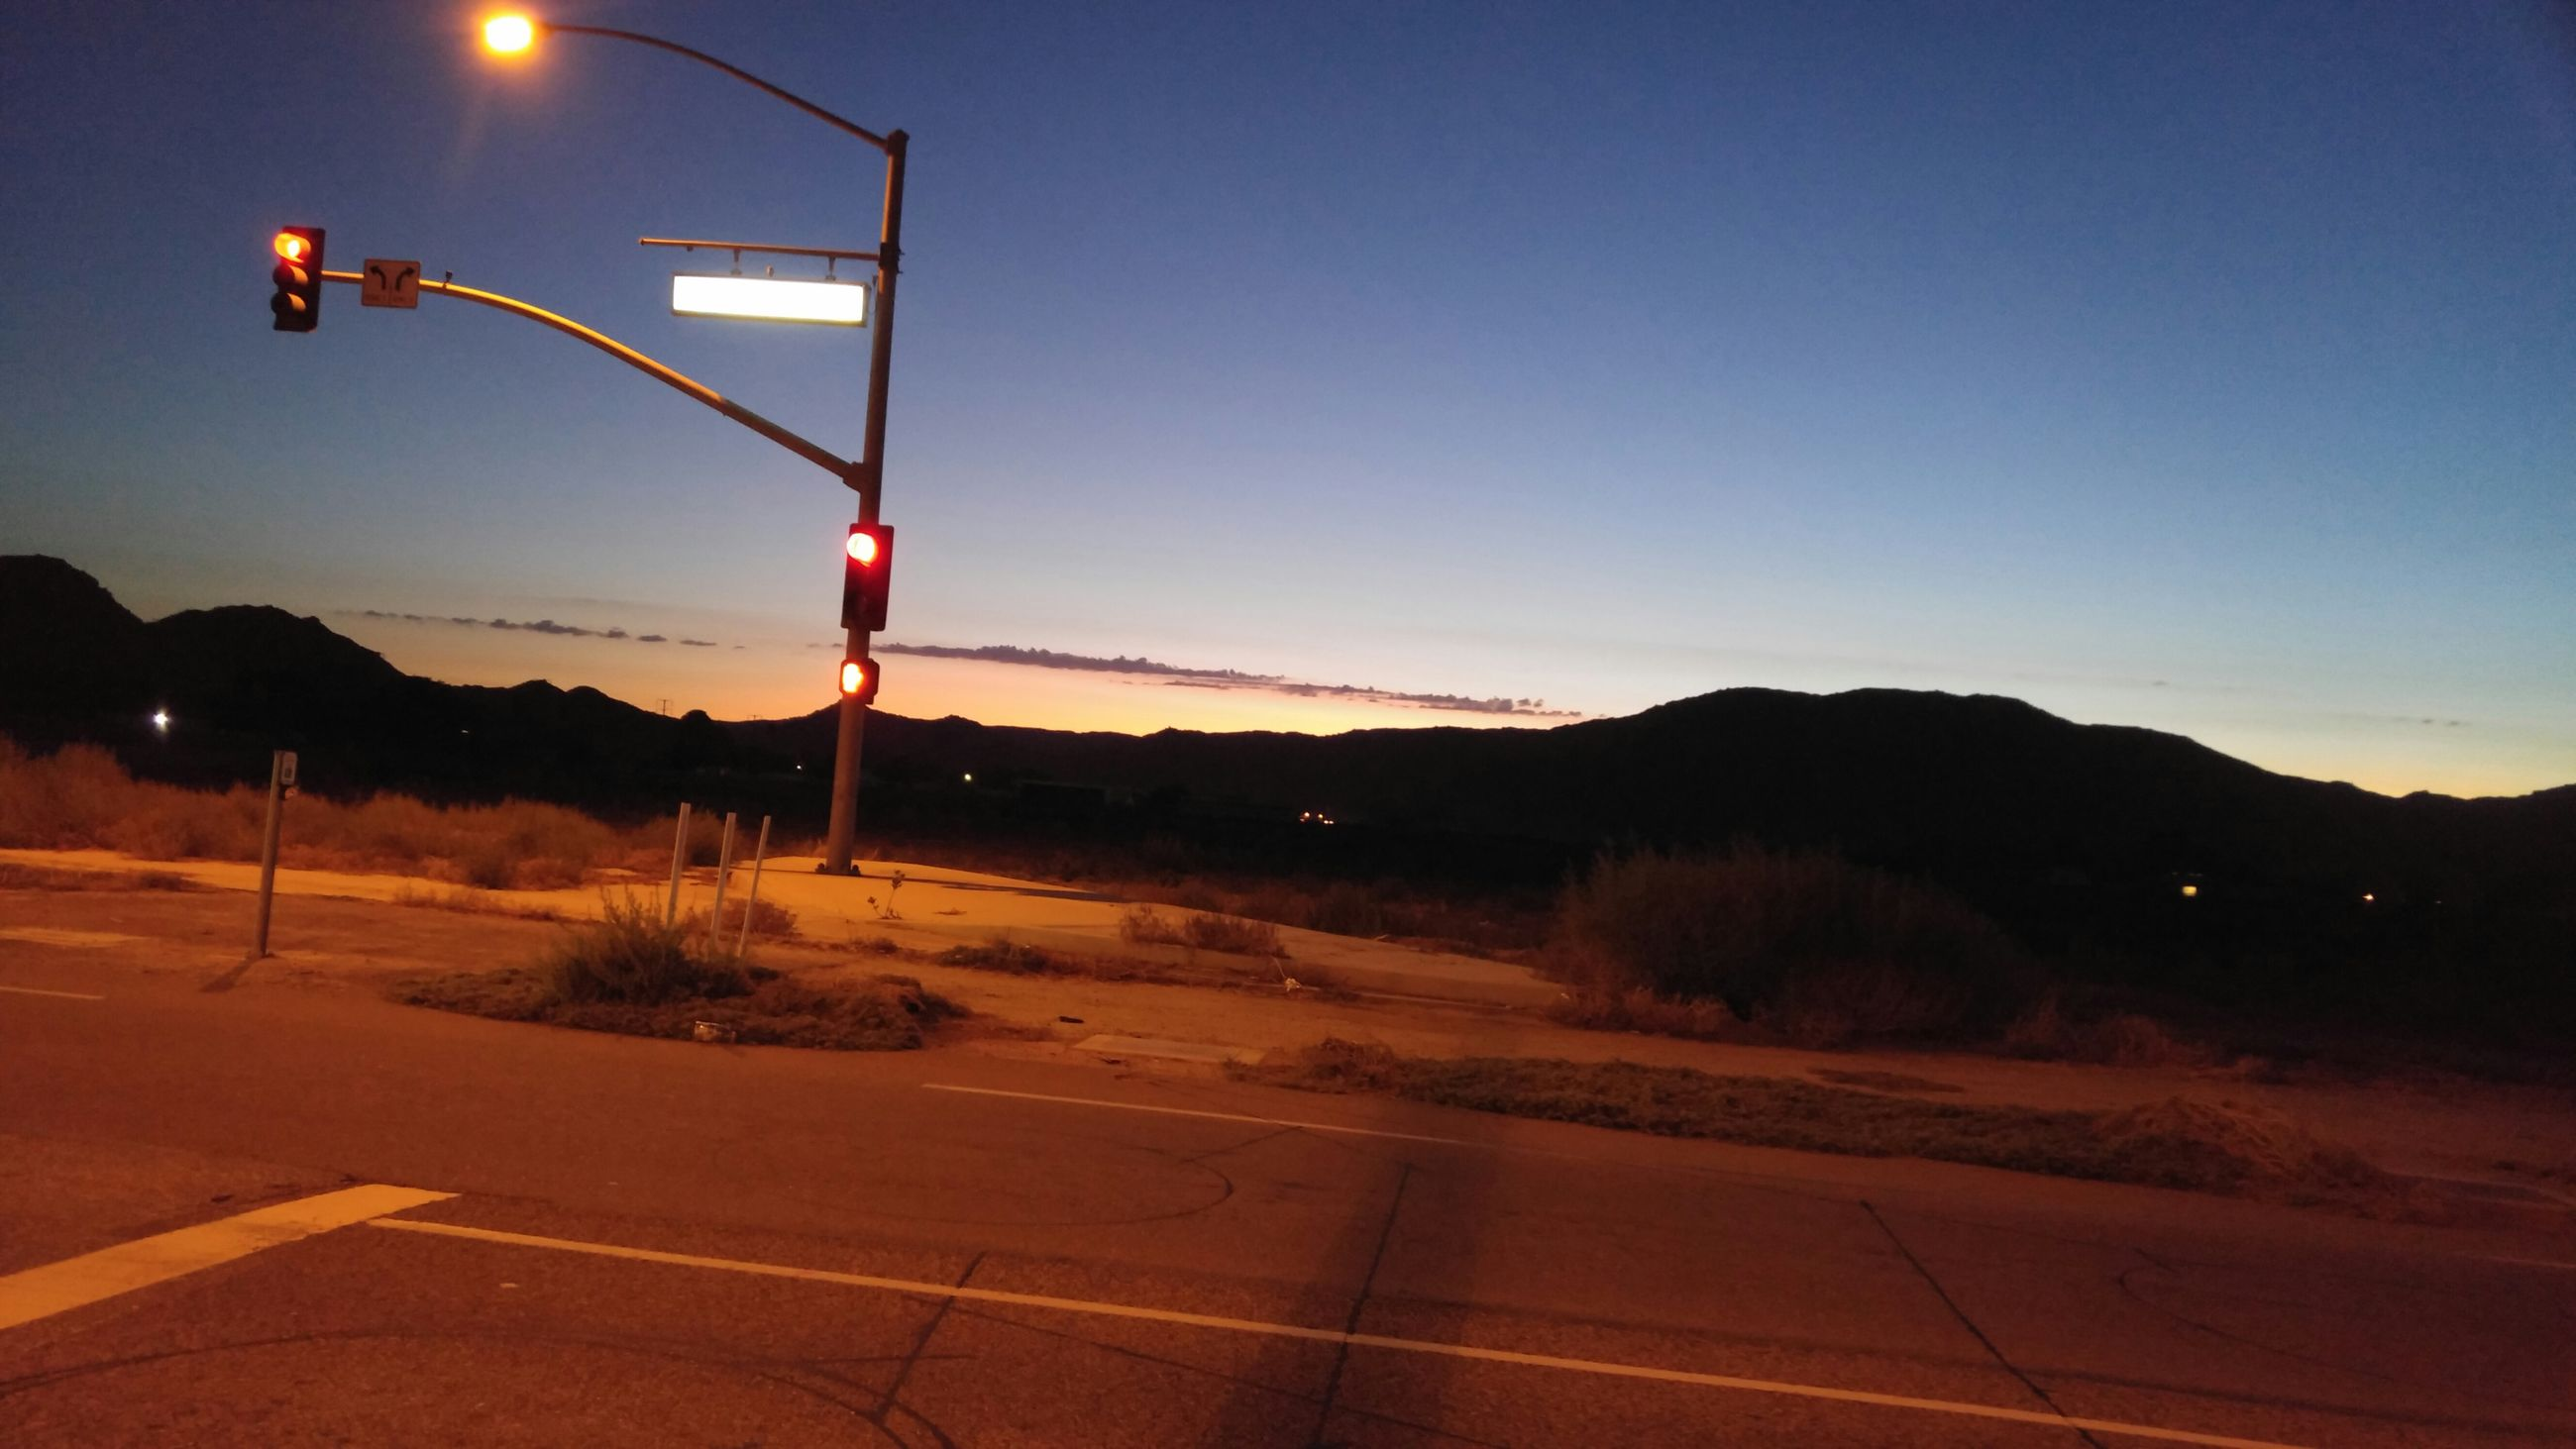 road, transportation, mountain, road sign, road marking, clear sky, sky, street light, red, landscape, street, the way forward, blue, mountain range, illuminated, guidance, copy space, outdoors, empty, dusk